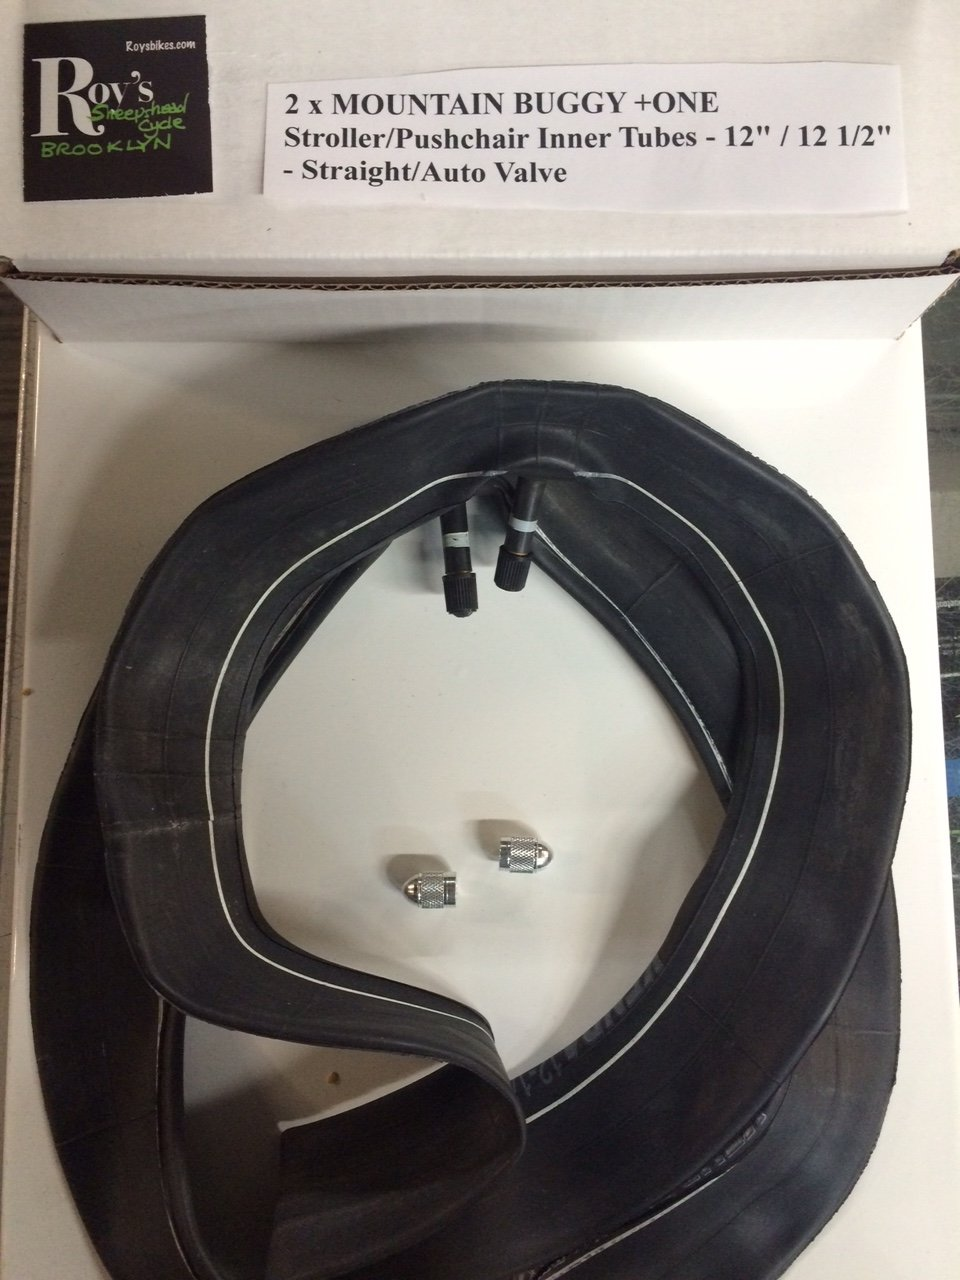 2 (Two) X Mountain Buggy + One Stroller/pushchair Inner Tube 12'/ 12 1/2 Straight Valve free Upgraded Valve Caps $4.99 Value Roys Sheepshead Cycle